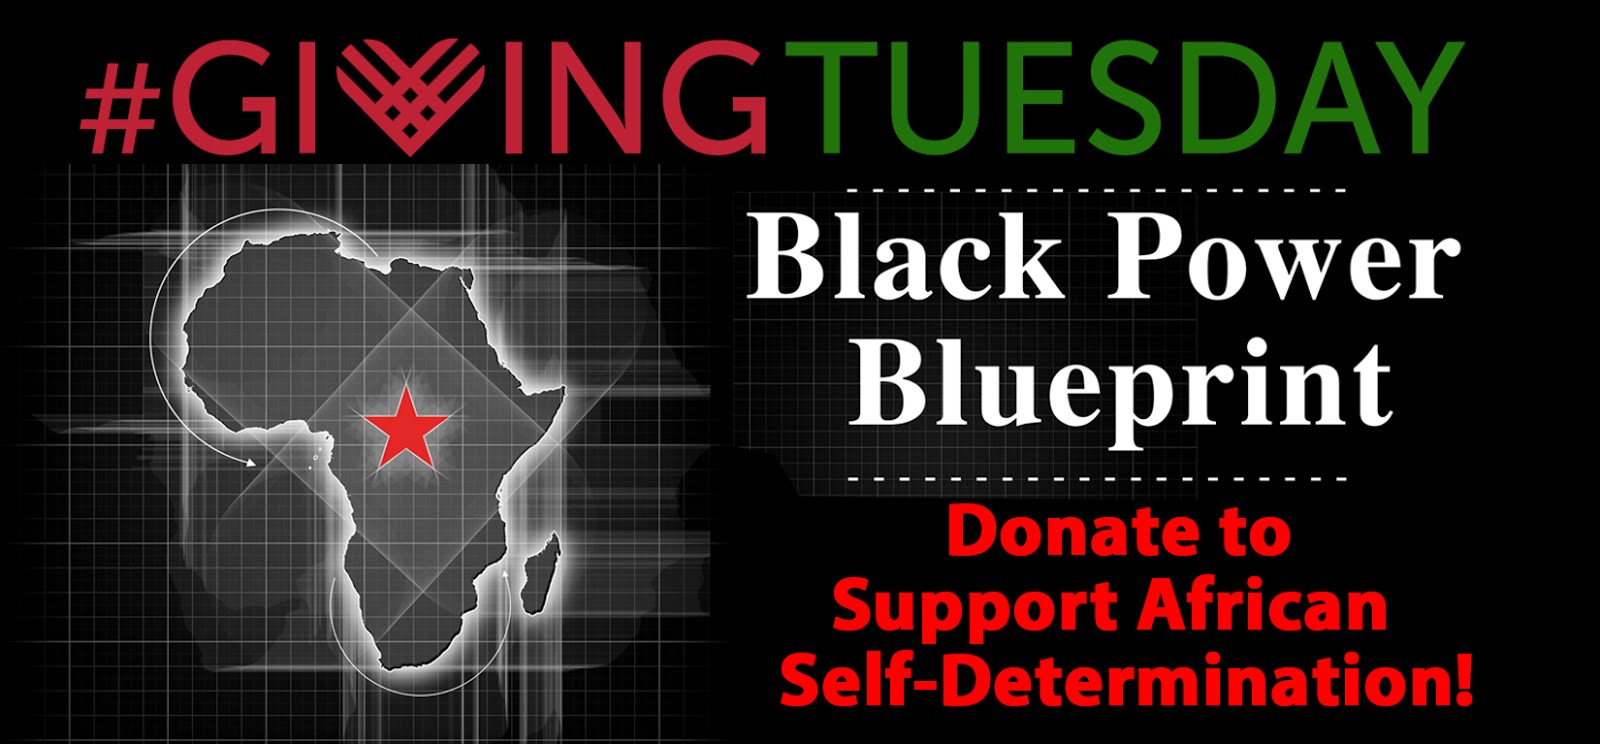 Donate Today to Support African Self-Determination